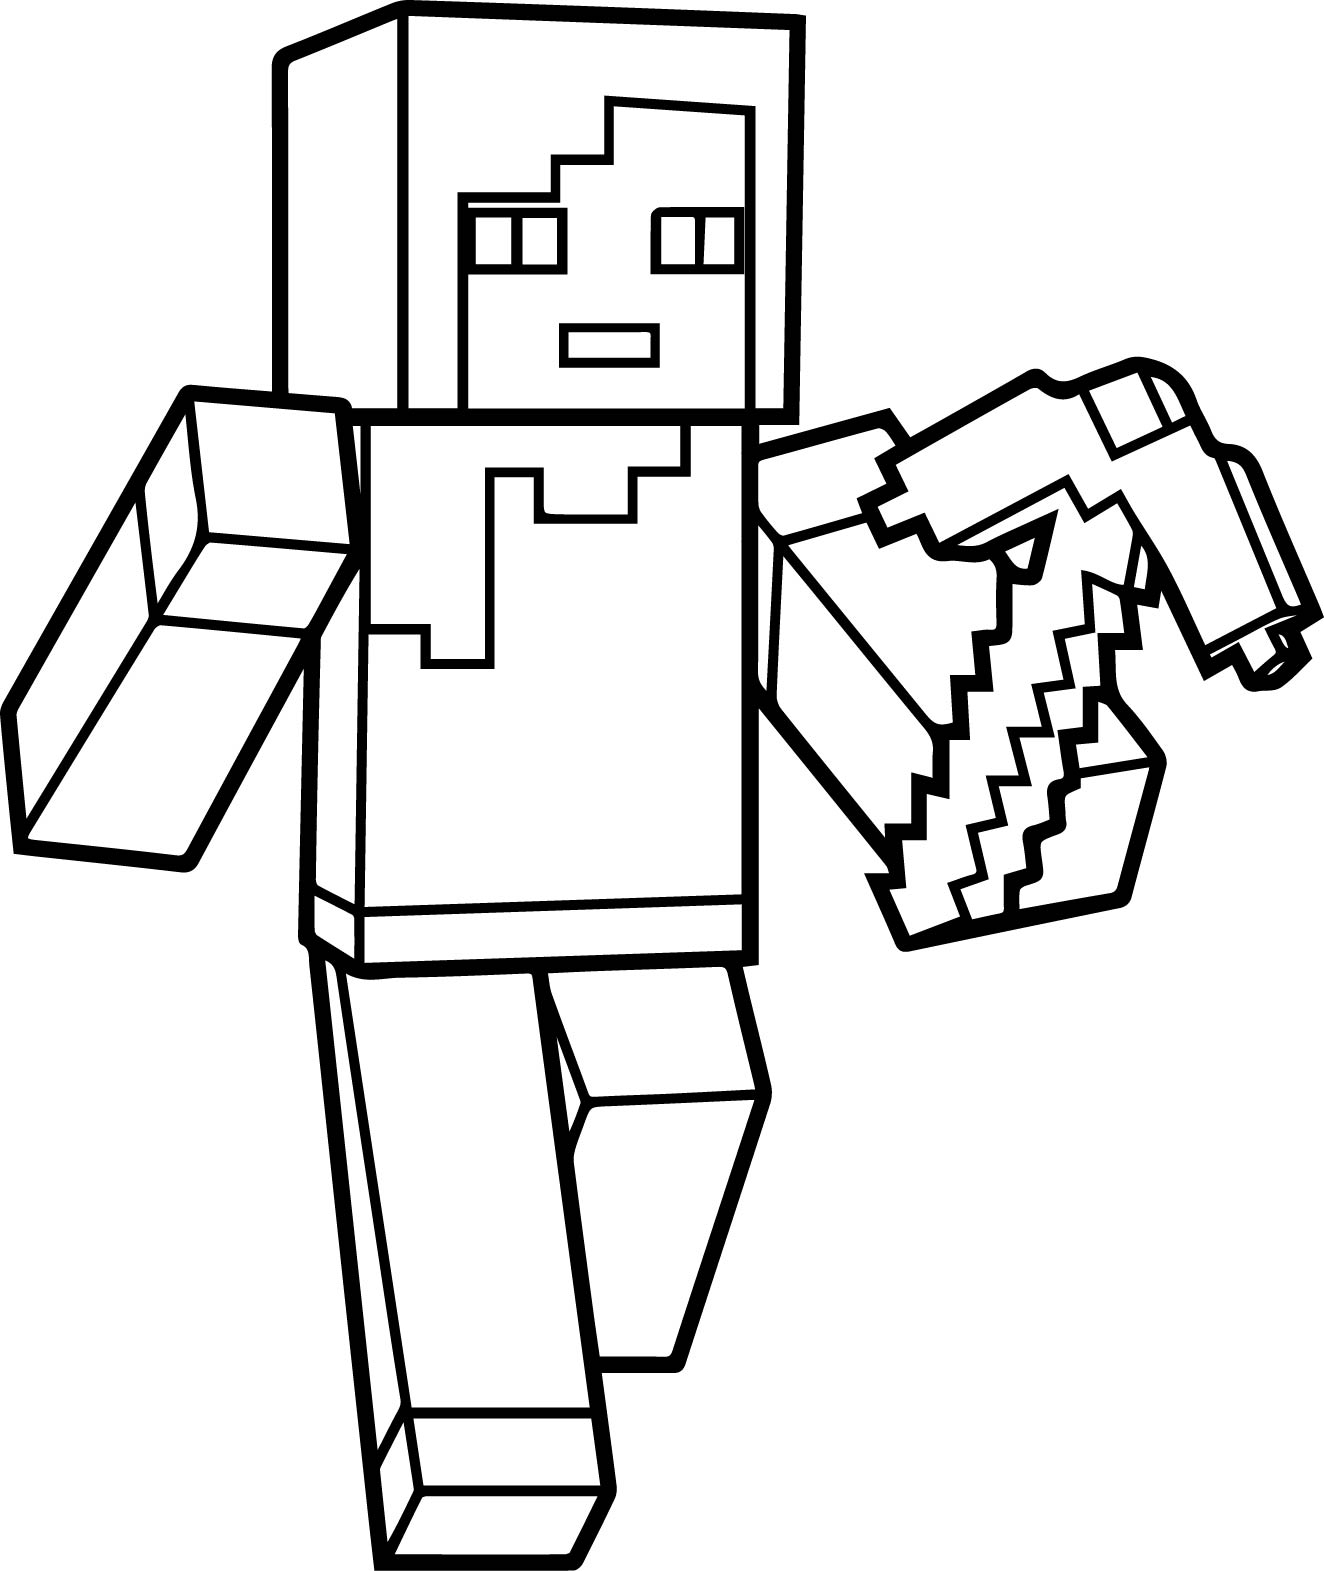 colouring pages of minecraft minecraft sword coloring pages at getcoloringscom free minecraft pages colouring of